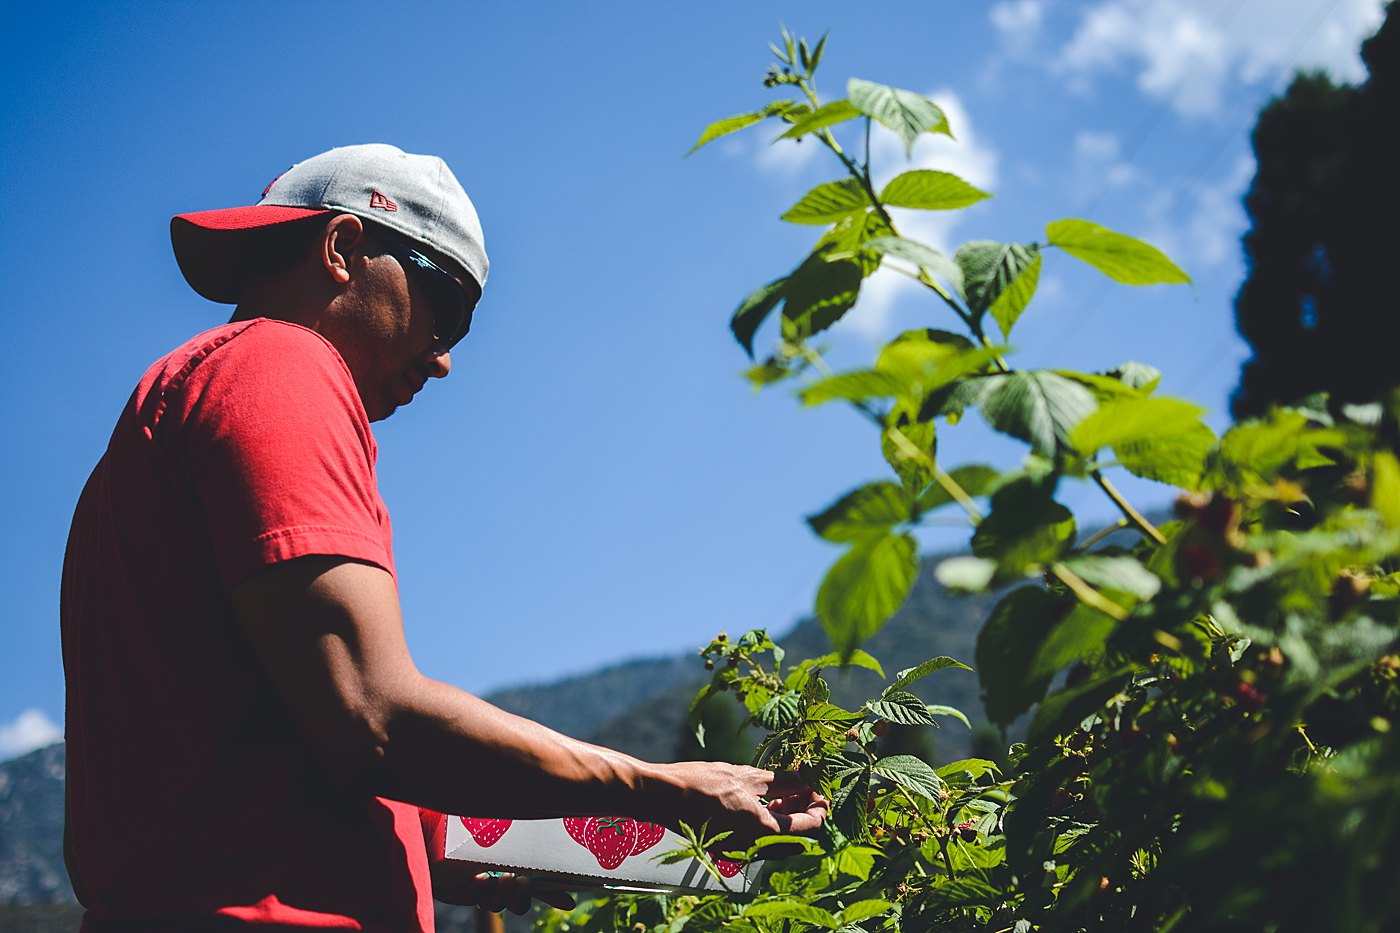 man berry picking snow line orchard oak glen captured grace by erin family photography